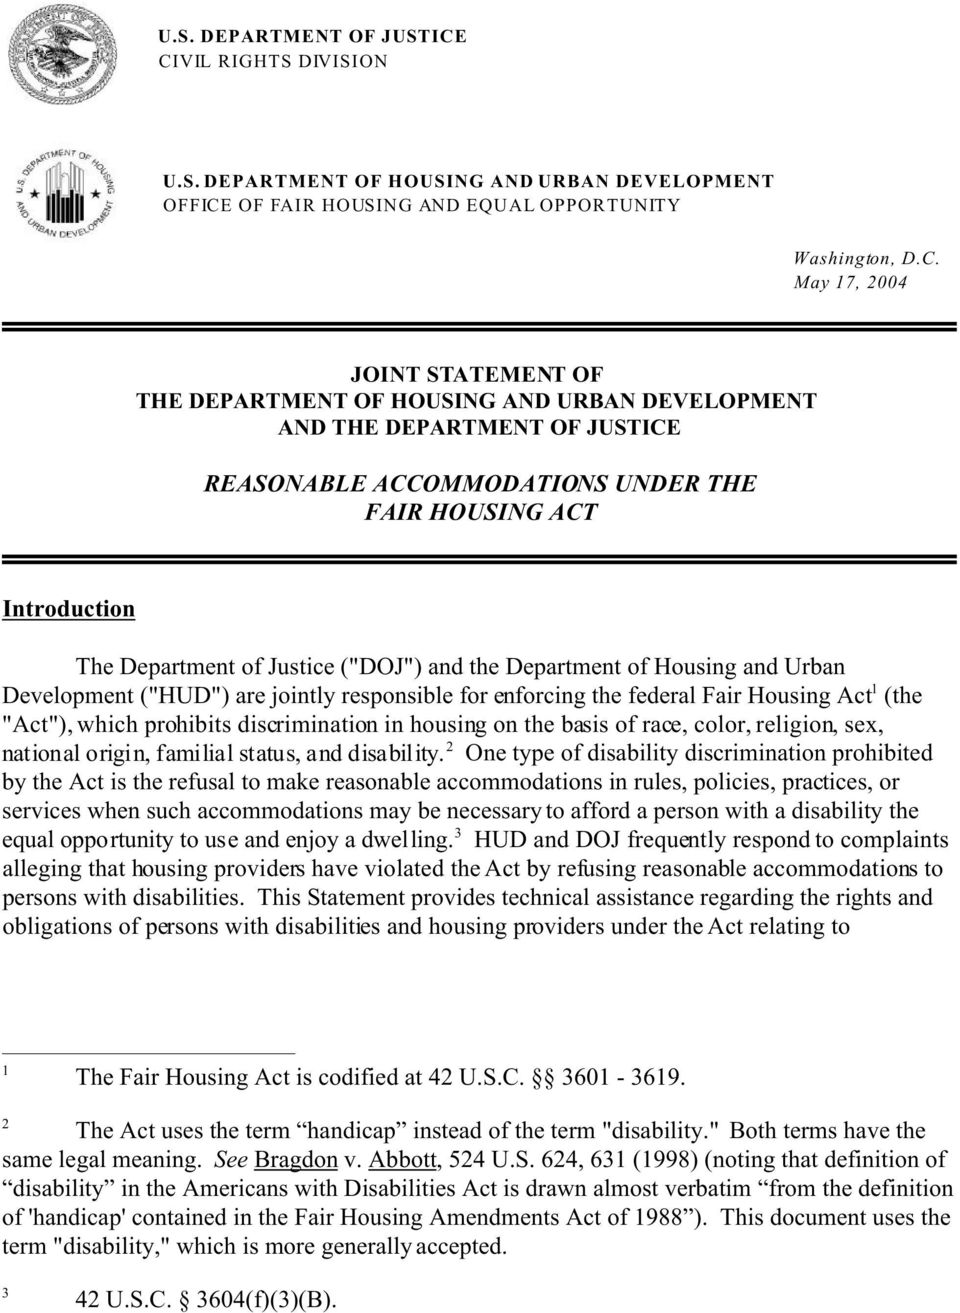 "URBAN DEVELOPMENT AND THE DEPARTMENT OF JUSTICE REASONABLE ACCOMMODATIONS UNDER THE FAIR HOUSING ACT Introduction The Department of Justice (""DOJ"") and the Department of Housing and Urban Development"